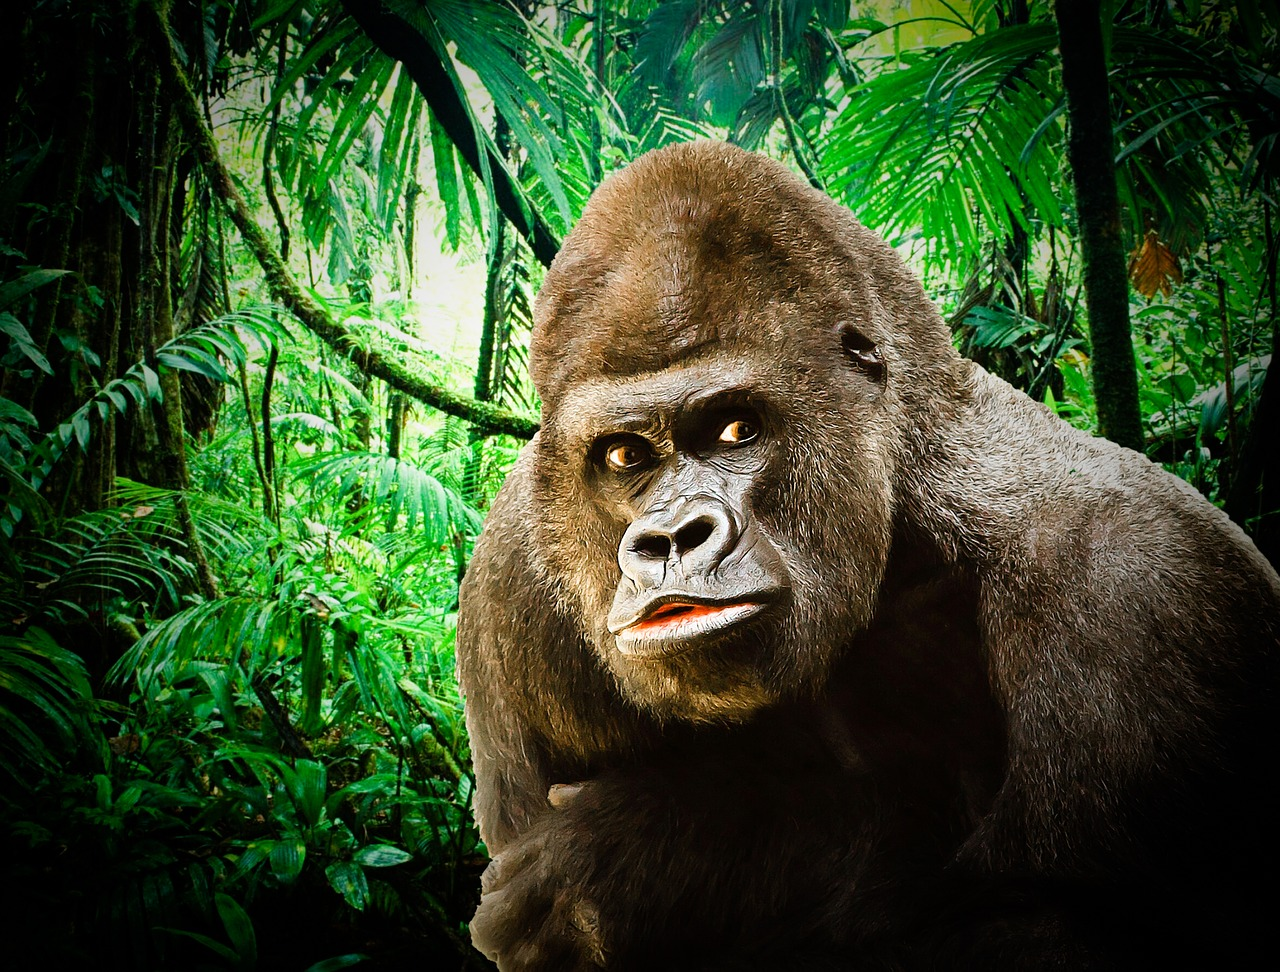 Gorilla Meme. A gorilla looking to the right with a jungle in the background.